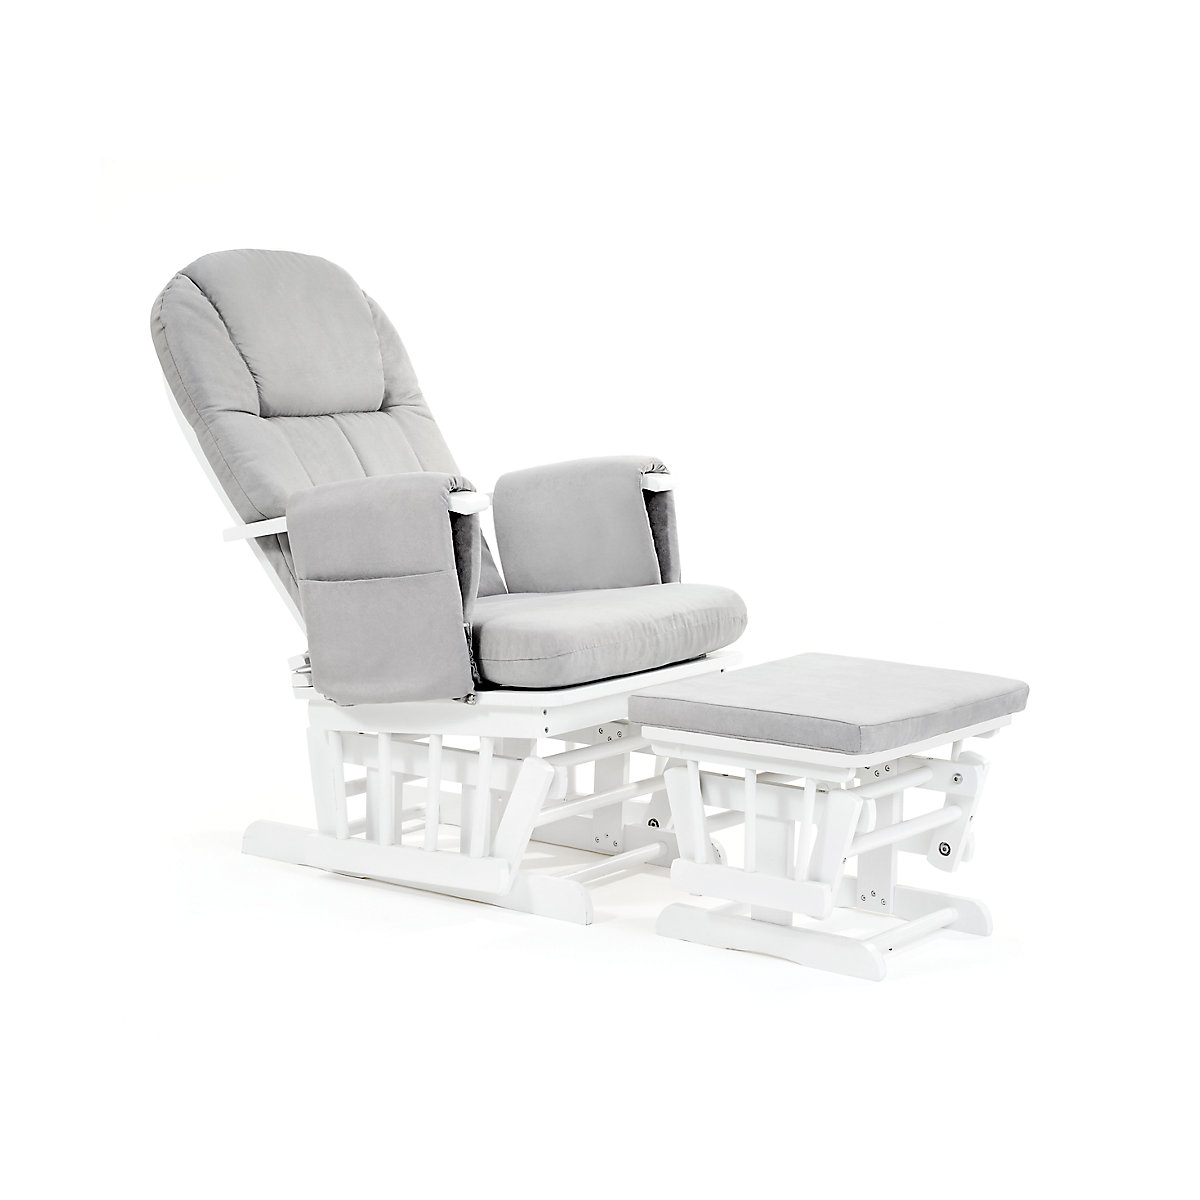 Mothercare Baby Nursery Reclining Glider Chair White With Grey Cushion EBay